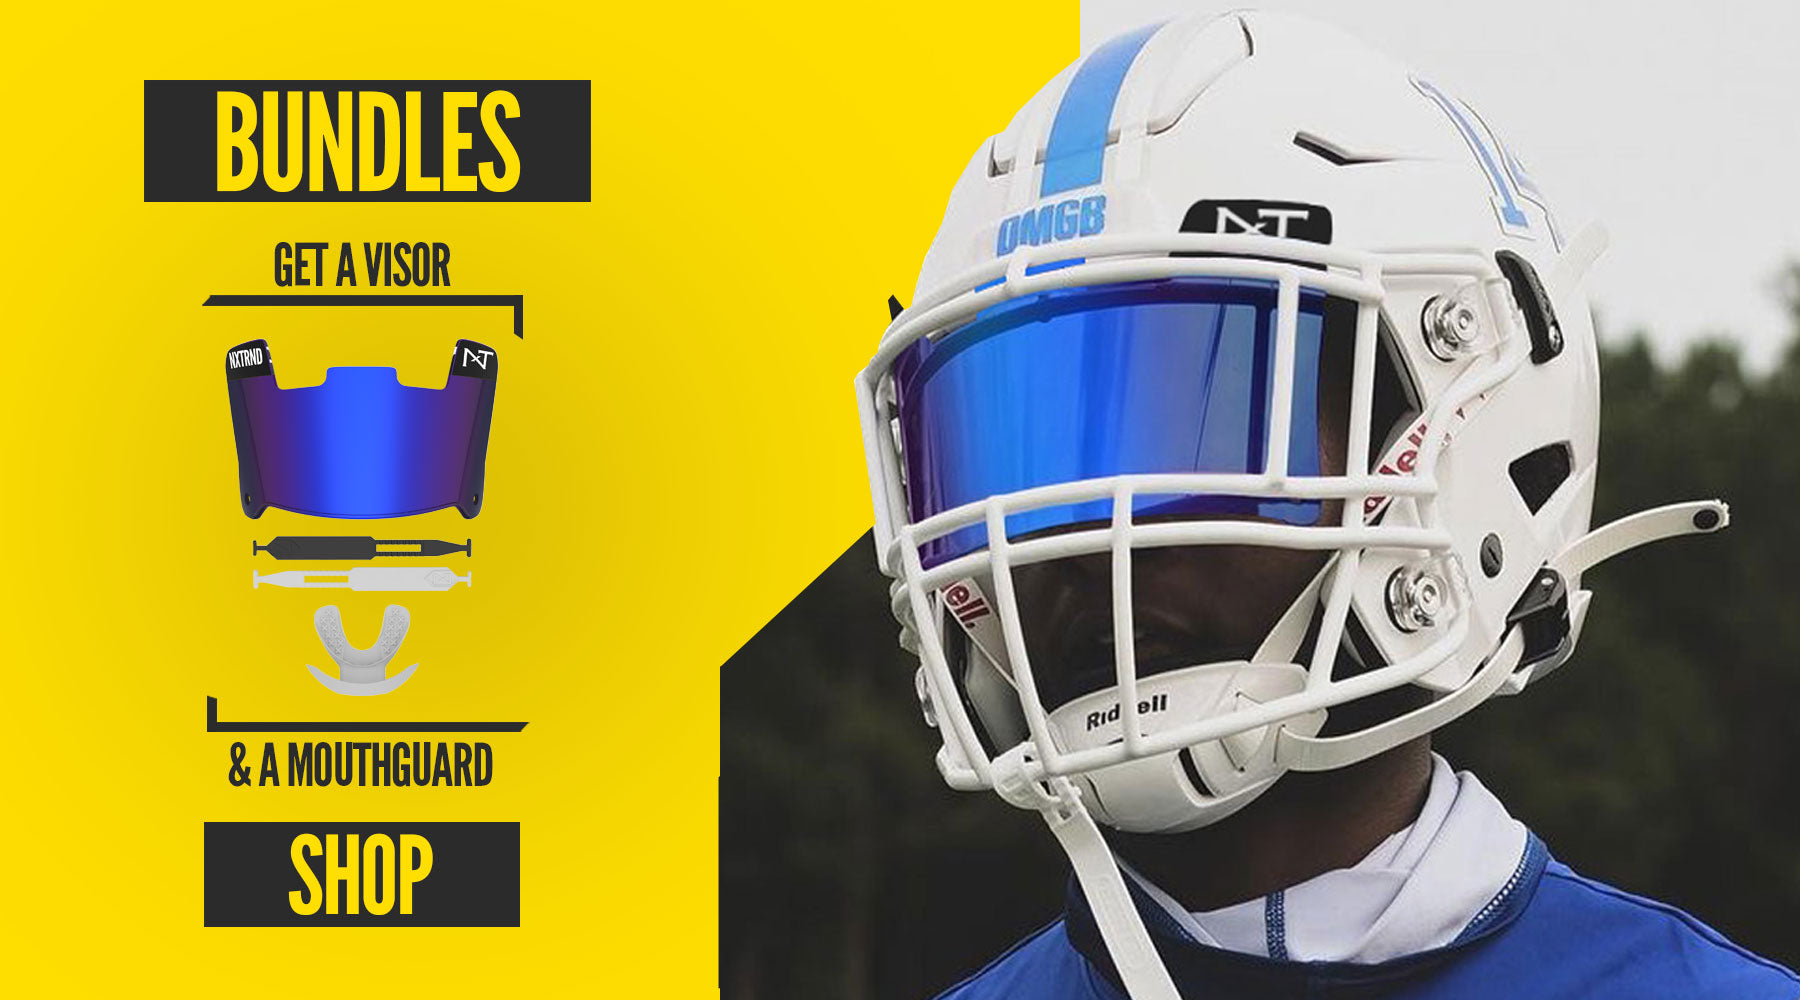 Shop Visors and Mouthguards